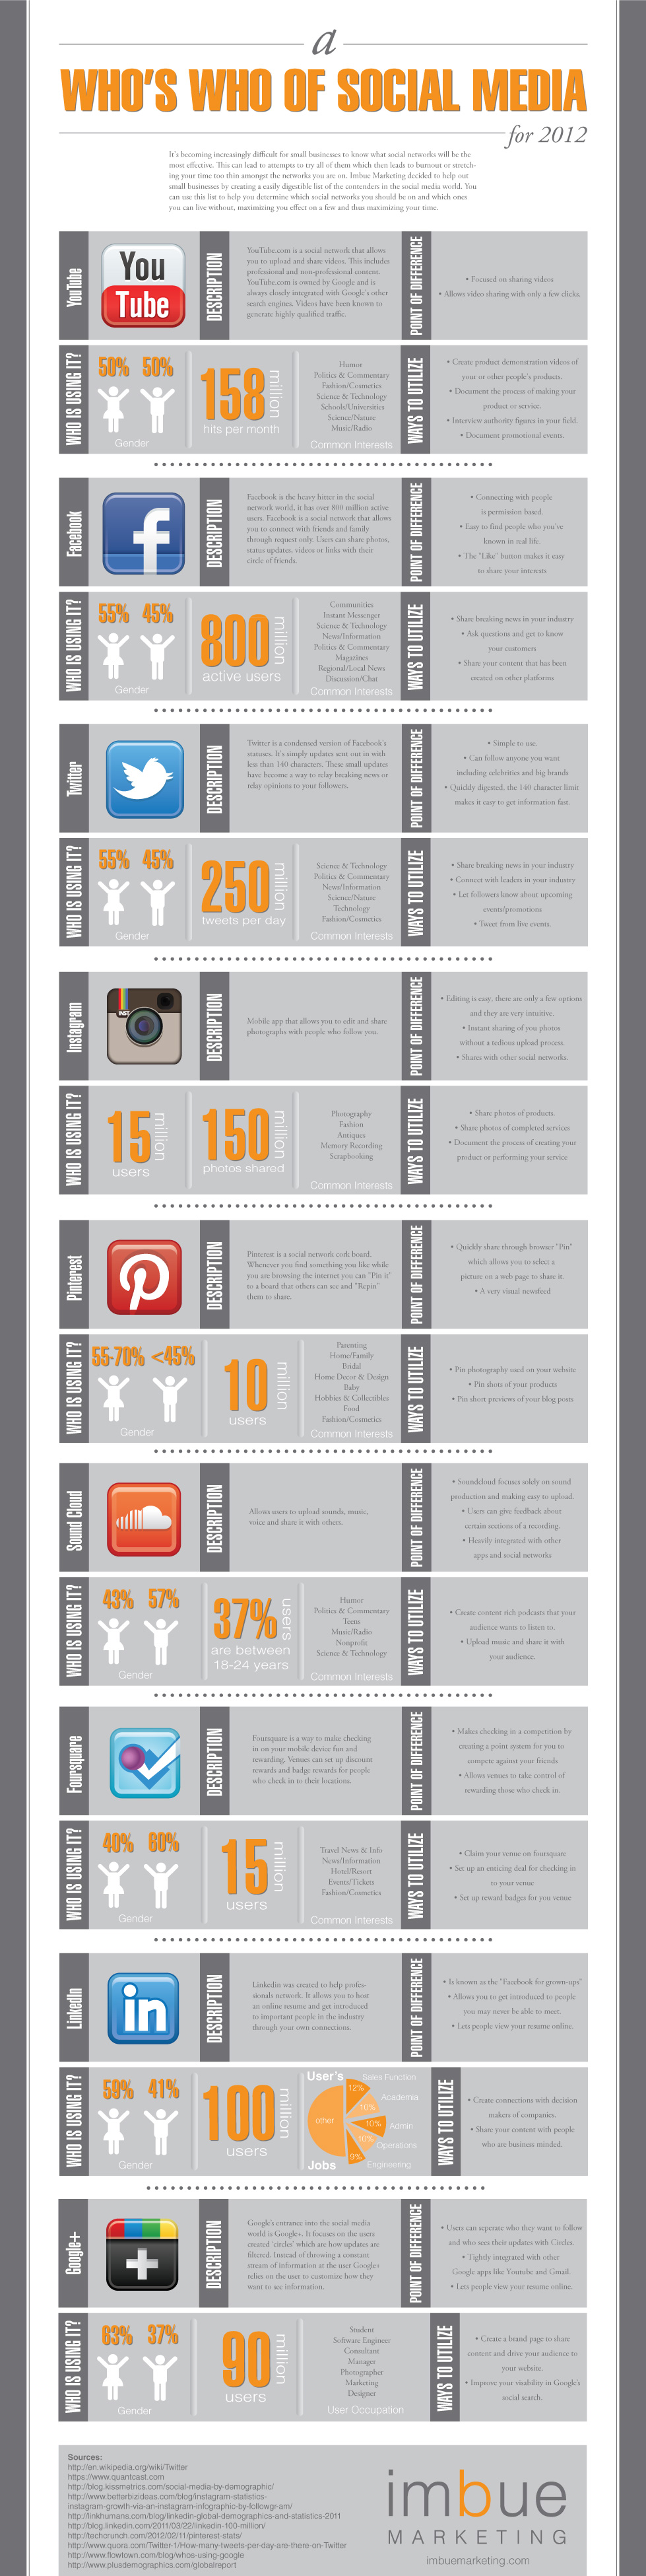 Who's-Who-Of-Social-Media-infographic